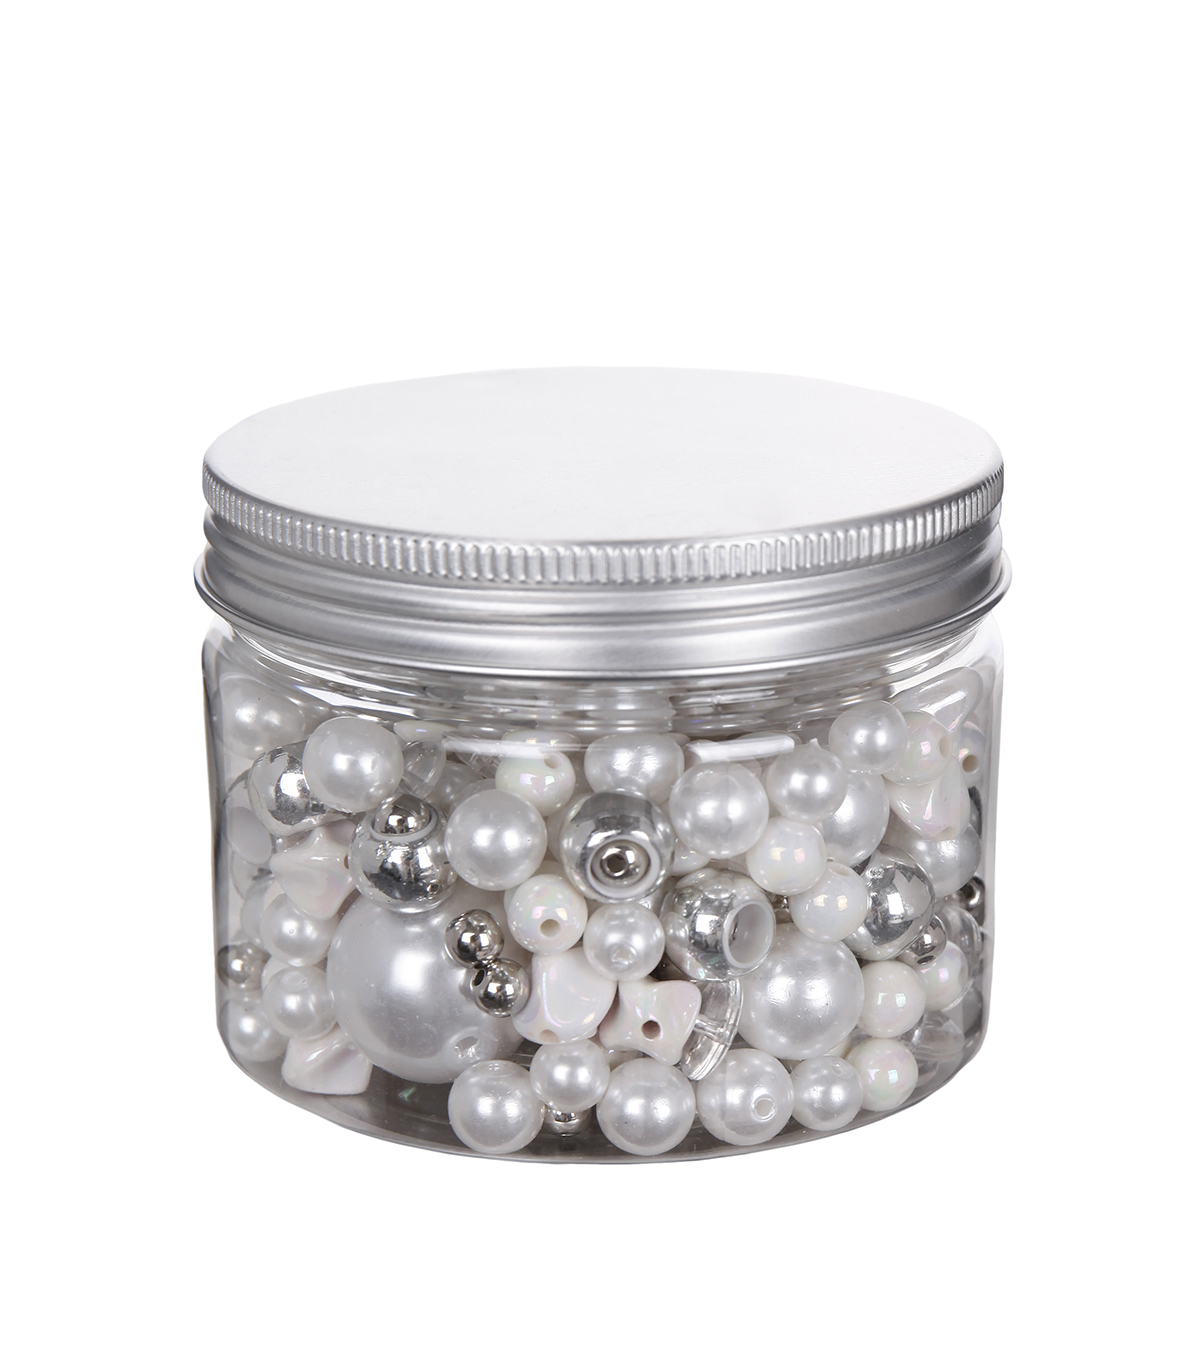 hildie & jo™ Assorted Fashion Beads in Plastic Jar-White & Silver